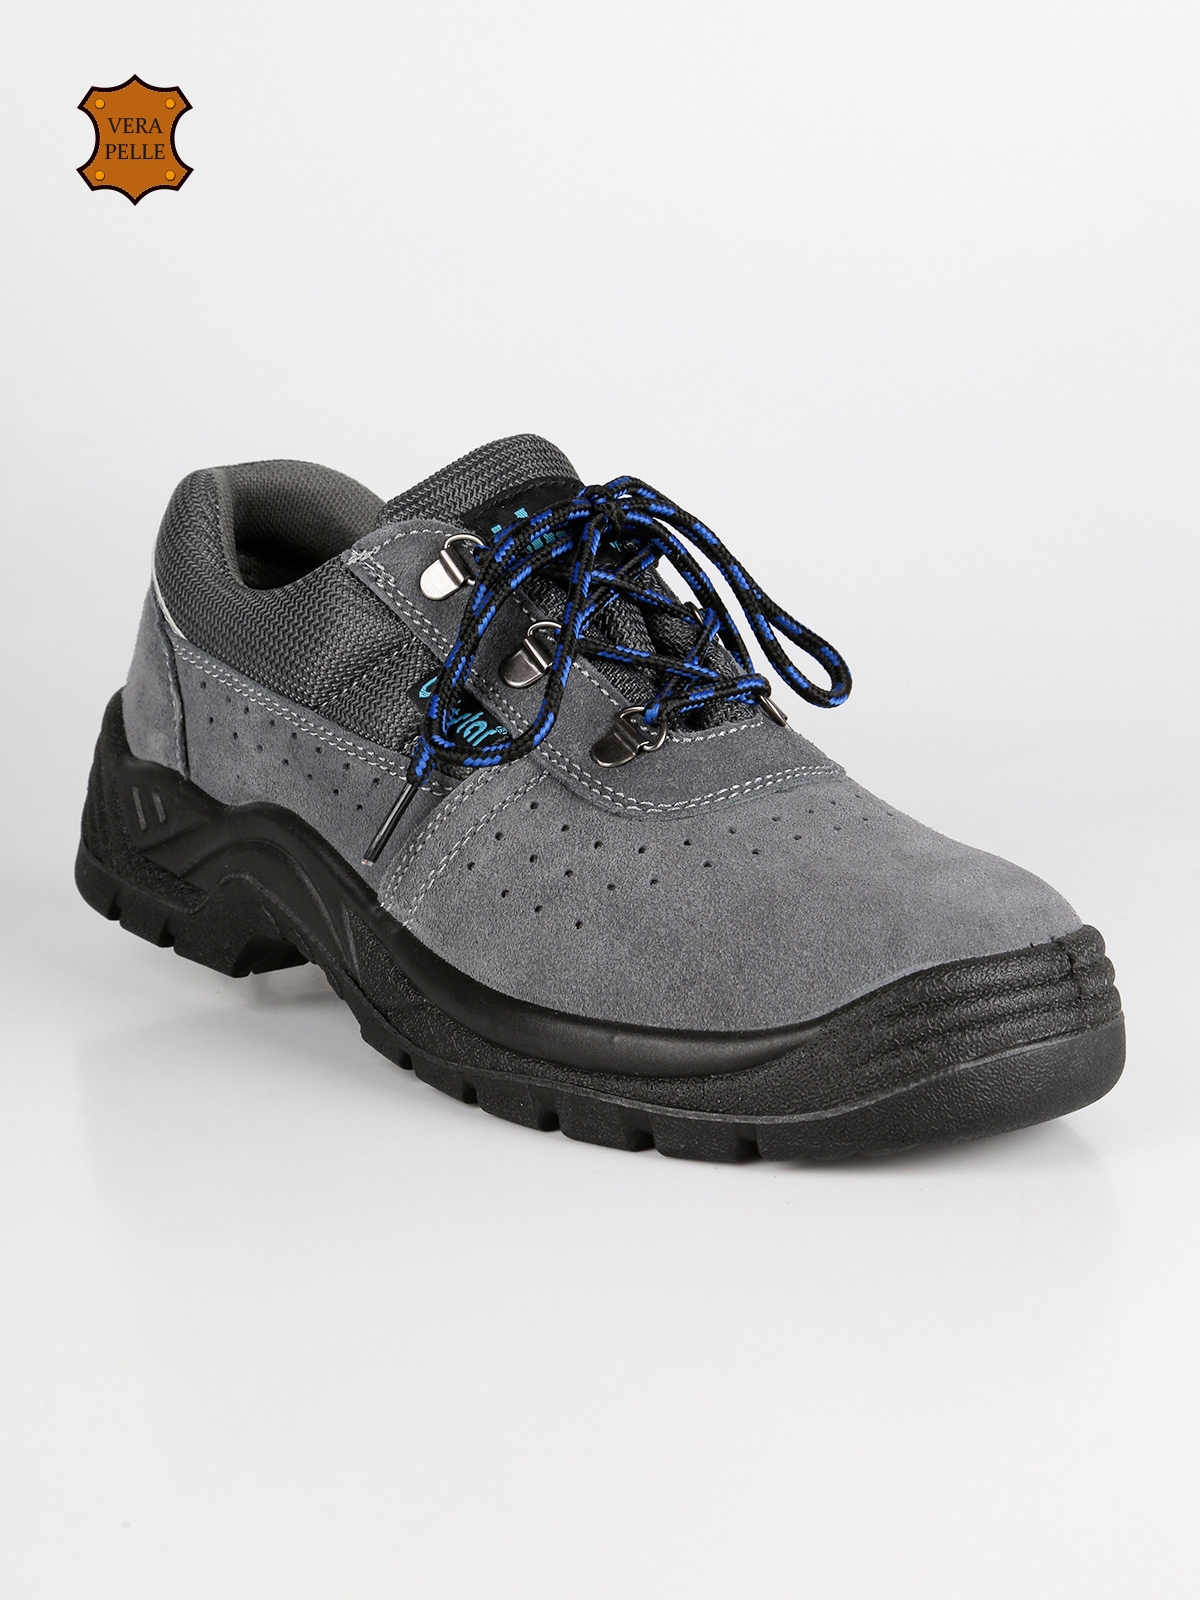 Safety Shoes Leather Camosciata-Gray